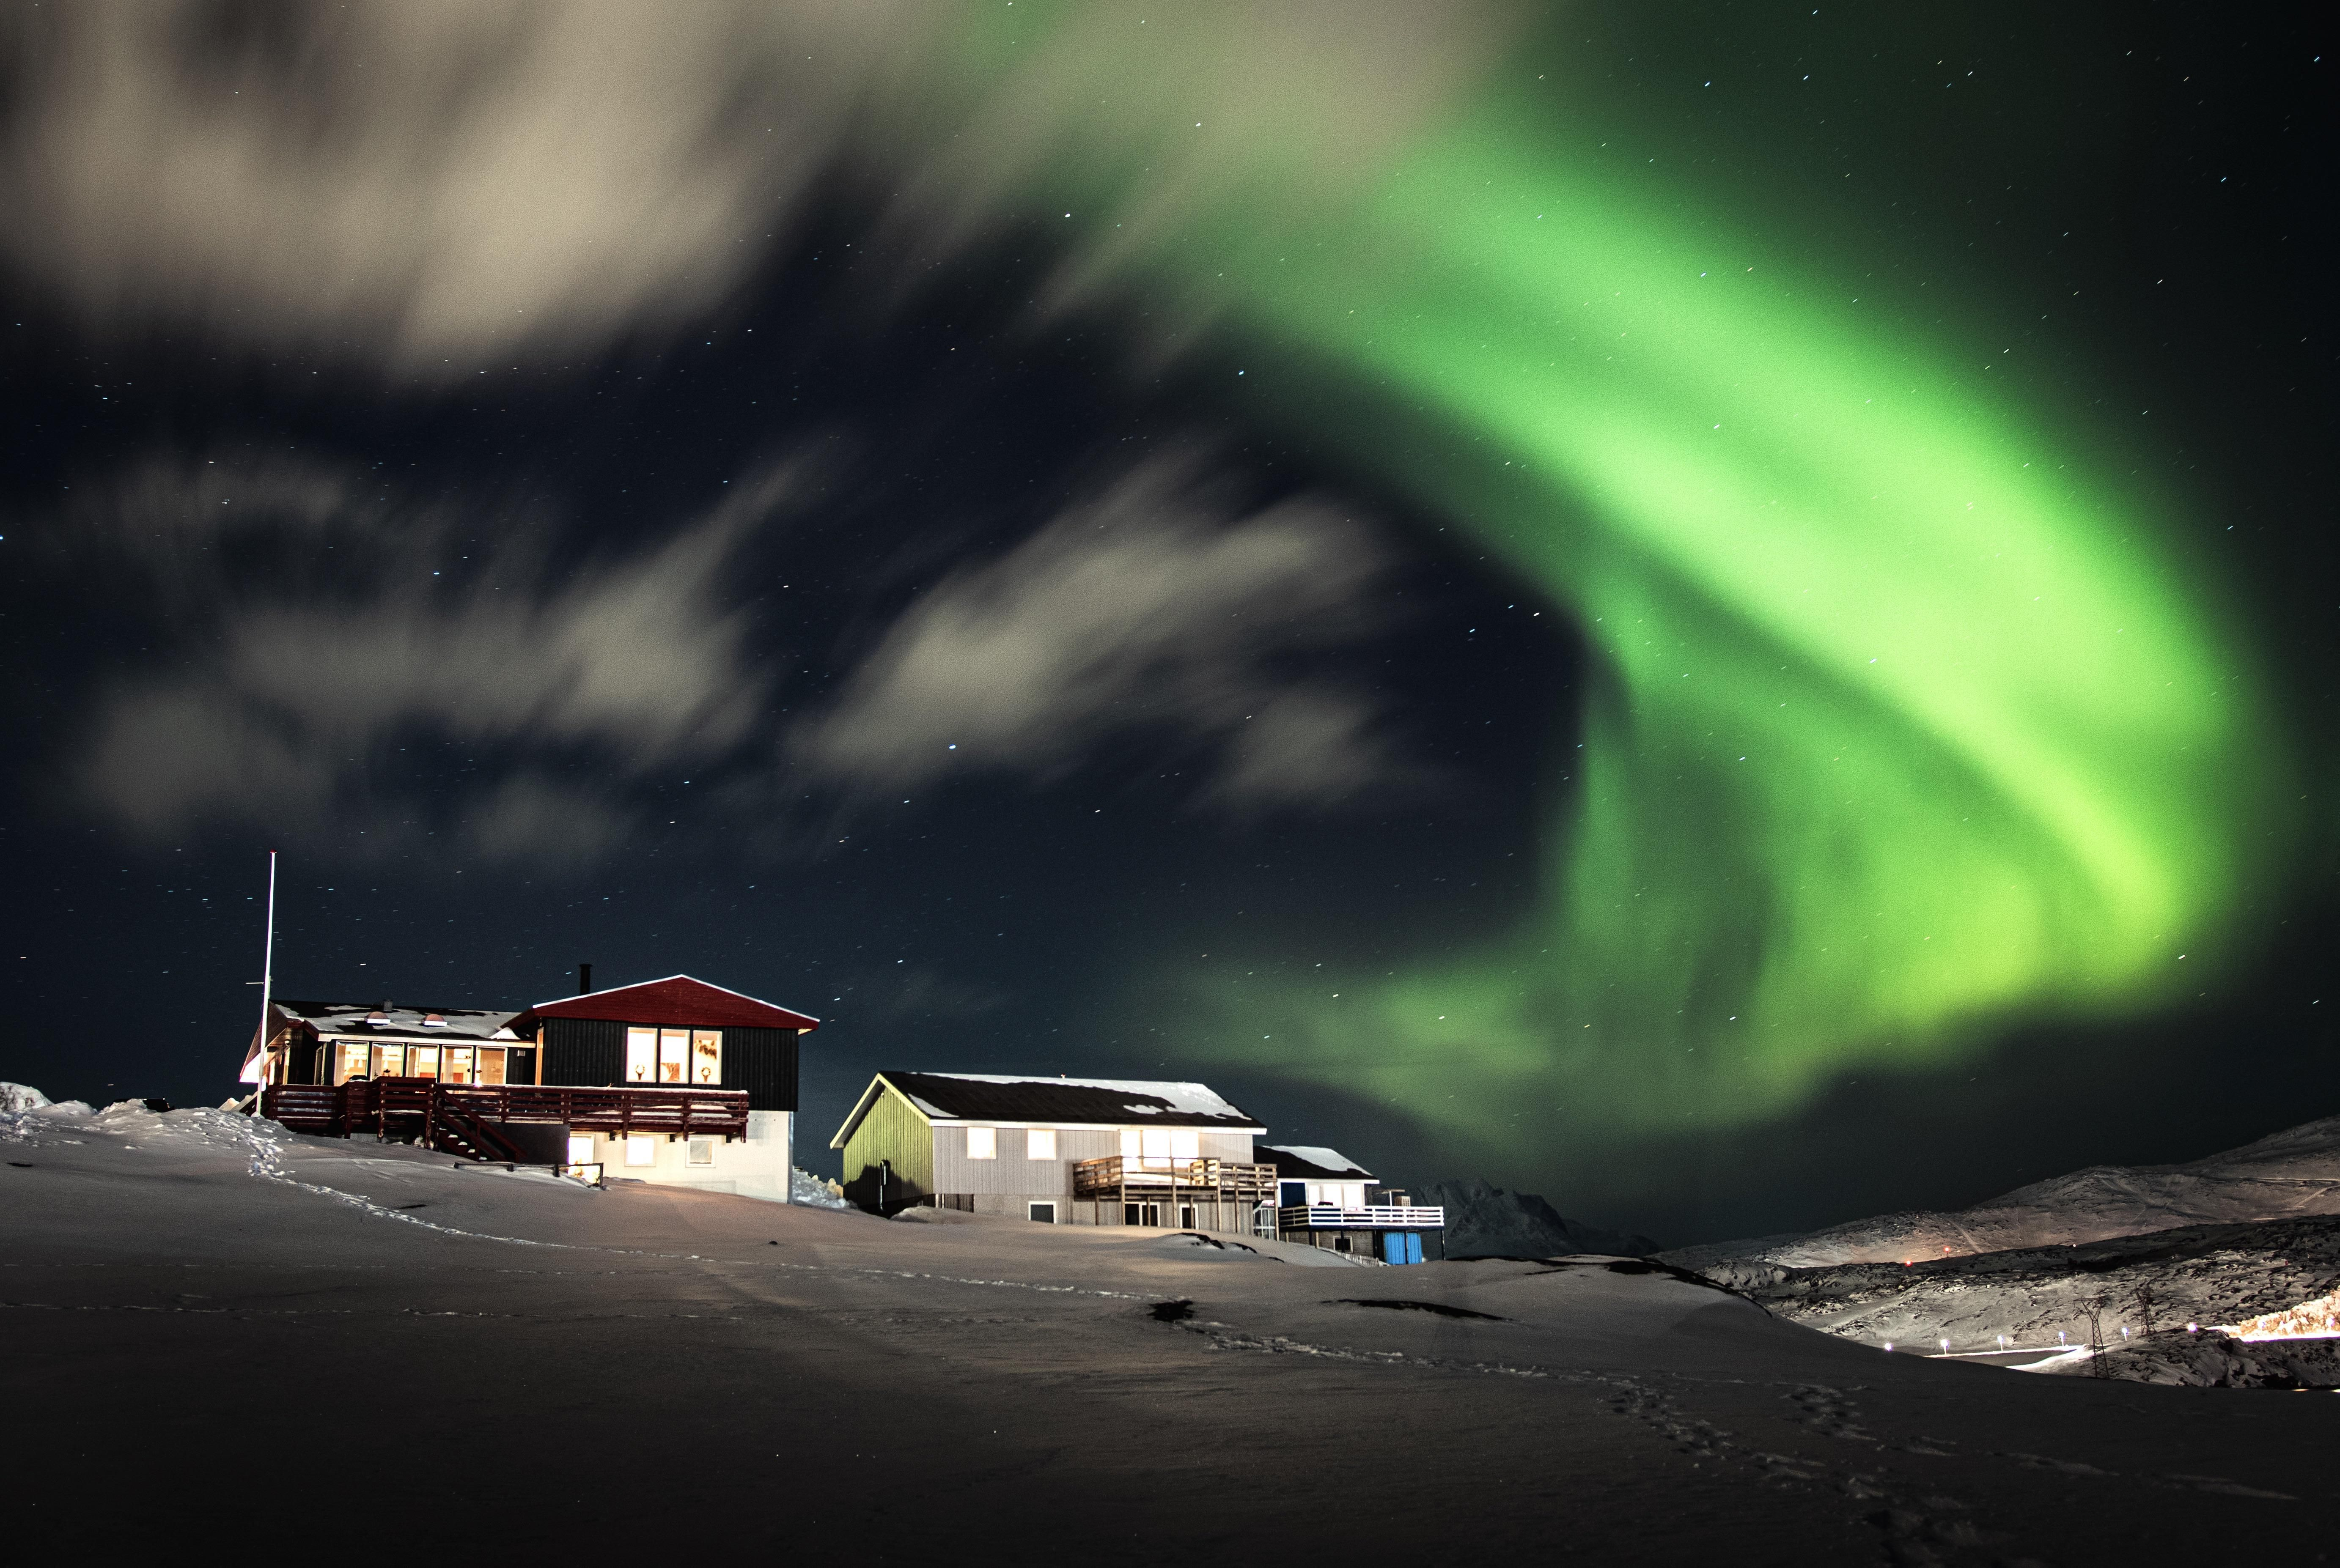 I live in Greenland Nuuk and this is my childhoodhome the northern lights this weekend was a show!